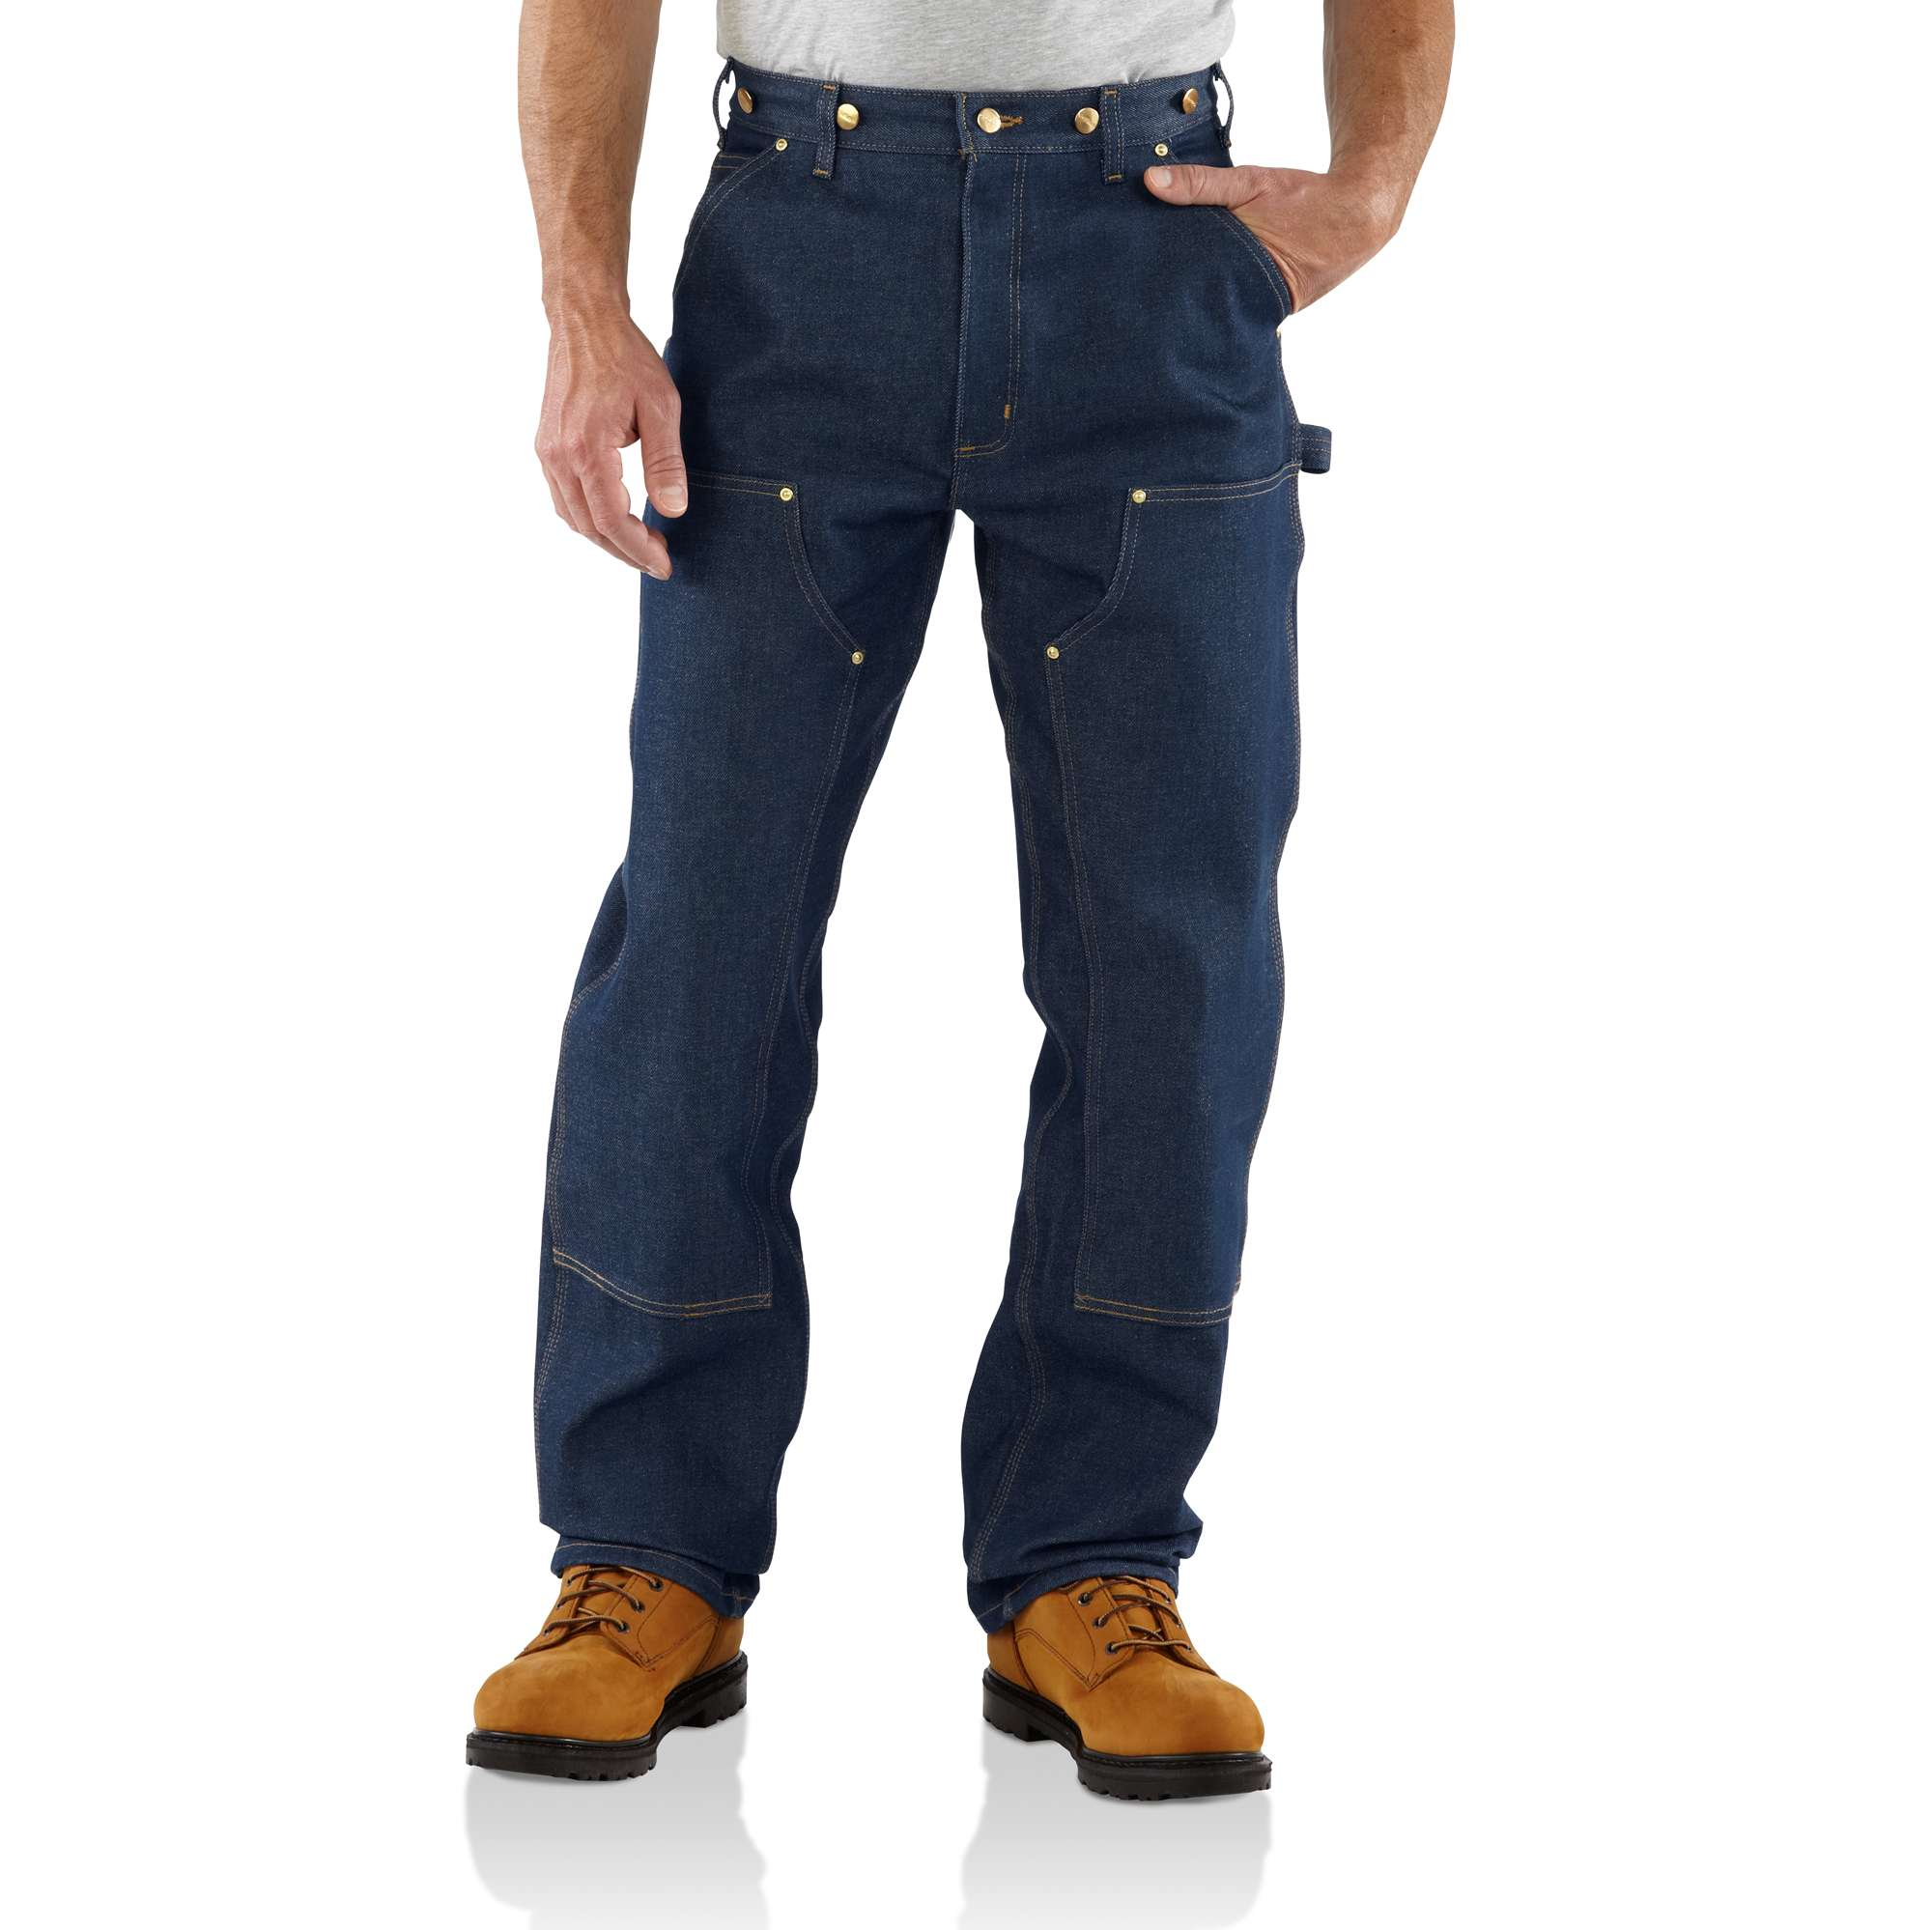 Carhartt Loose/original-fit Double-front Logger Dungaree Jean